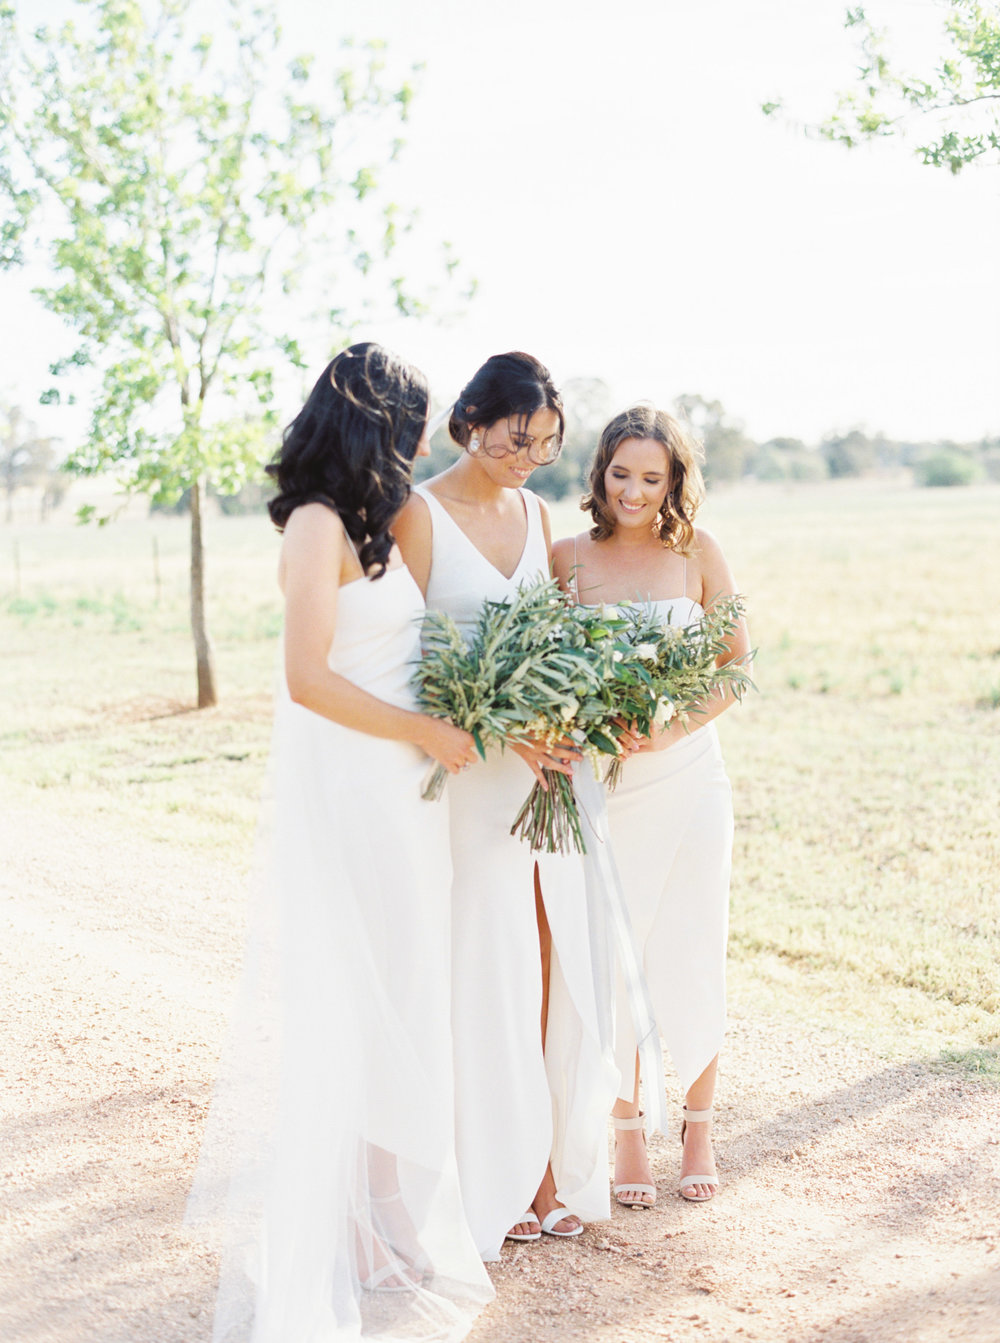 00054- Olive Tree Mediterranean Wedding in Mudgee NSW Australia Fine Art Film Wedding Lifestyle Photographer Sheri McMahon_.jpg